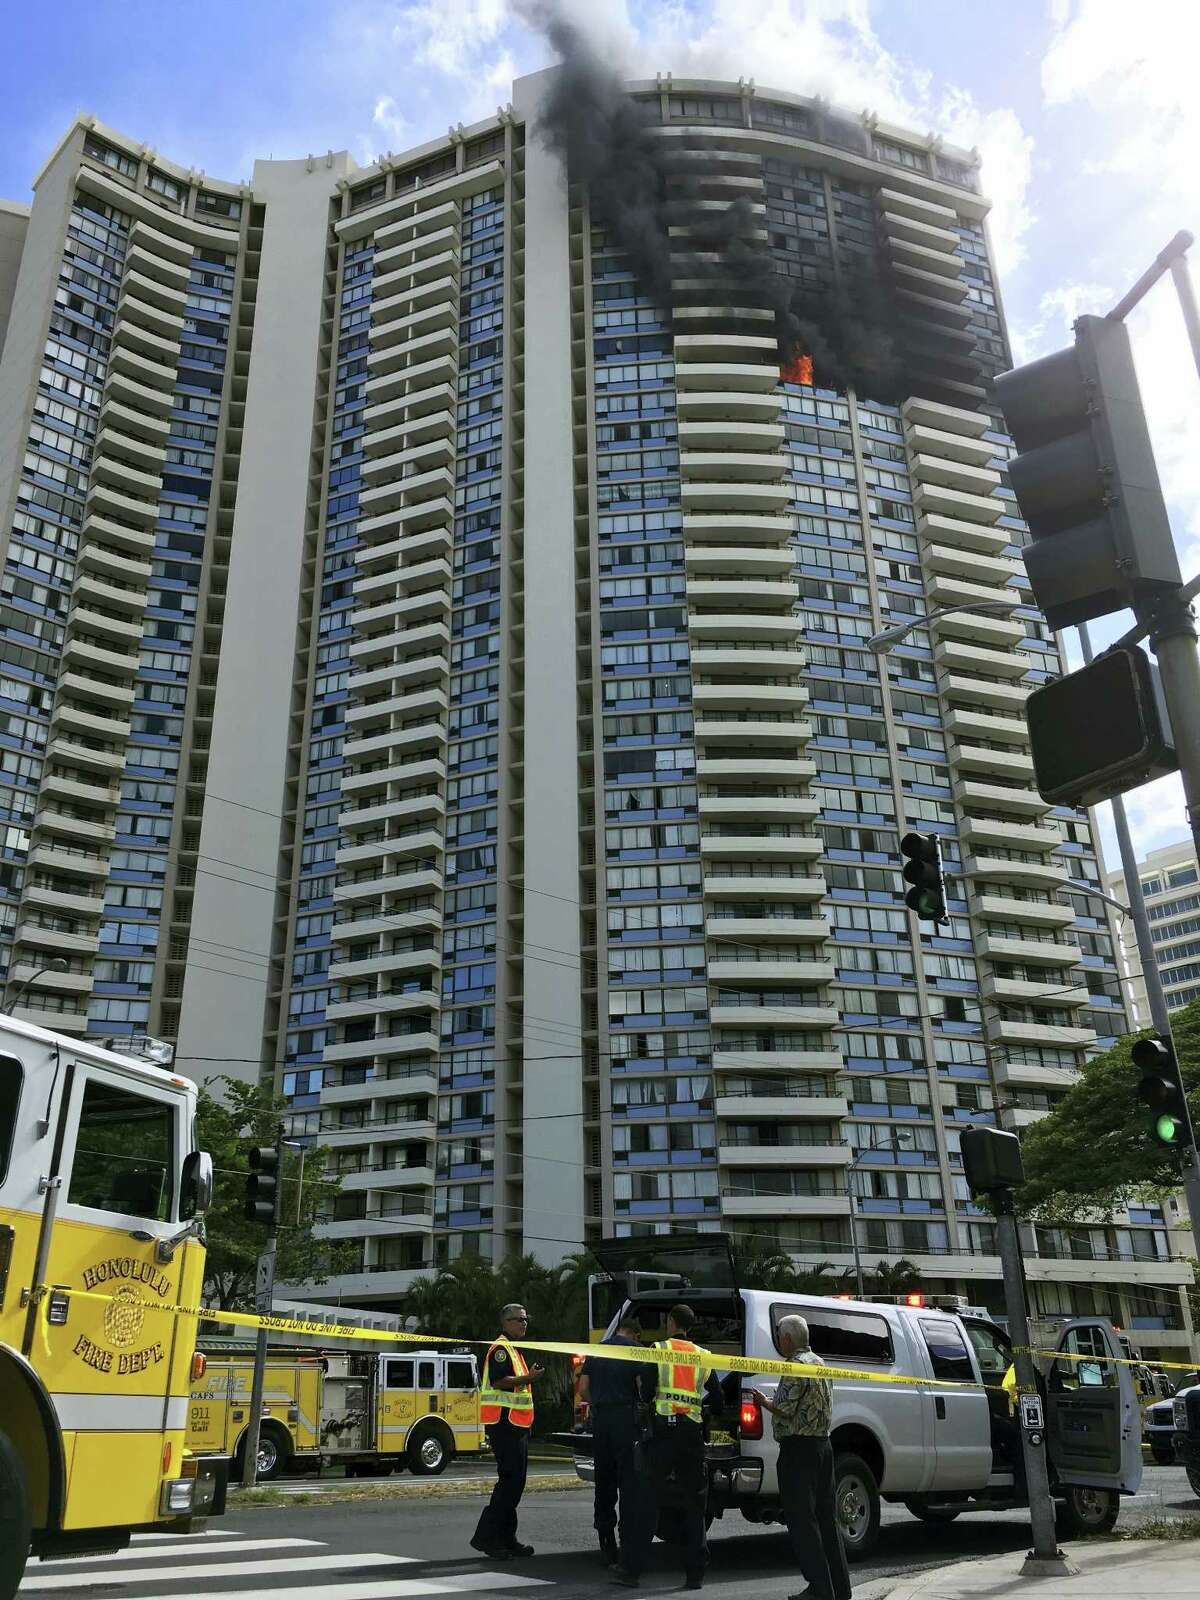 Law enforcement officers stand at the scene of a multi-alarm fire at a high-rise apartment building in Honolulu, Friday, July 14, 2017. Dozens of firefighters are battling the fire at Marco Polo apartments that Honolulu Fire Department spokesman Capt. David Jenkins said started on the 26th floor and has spread to other units.